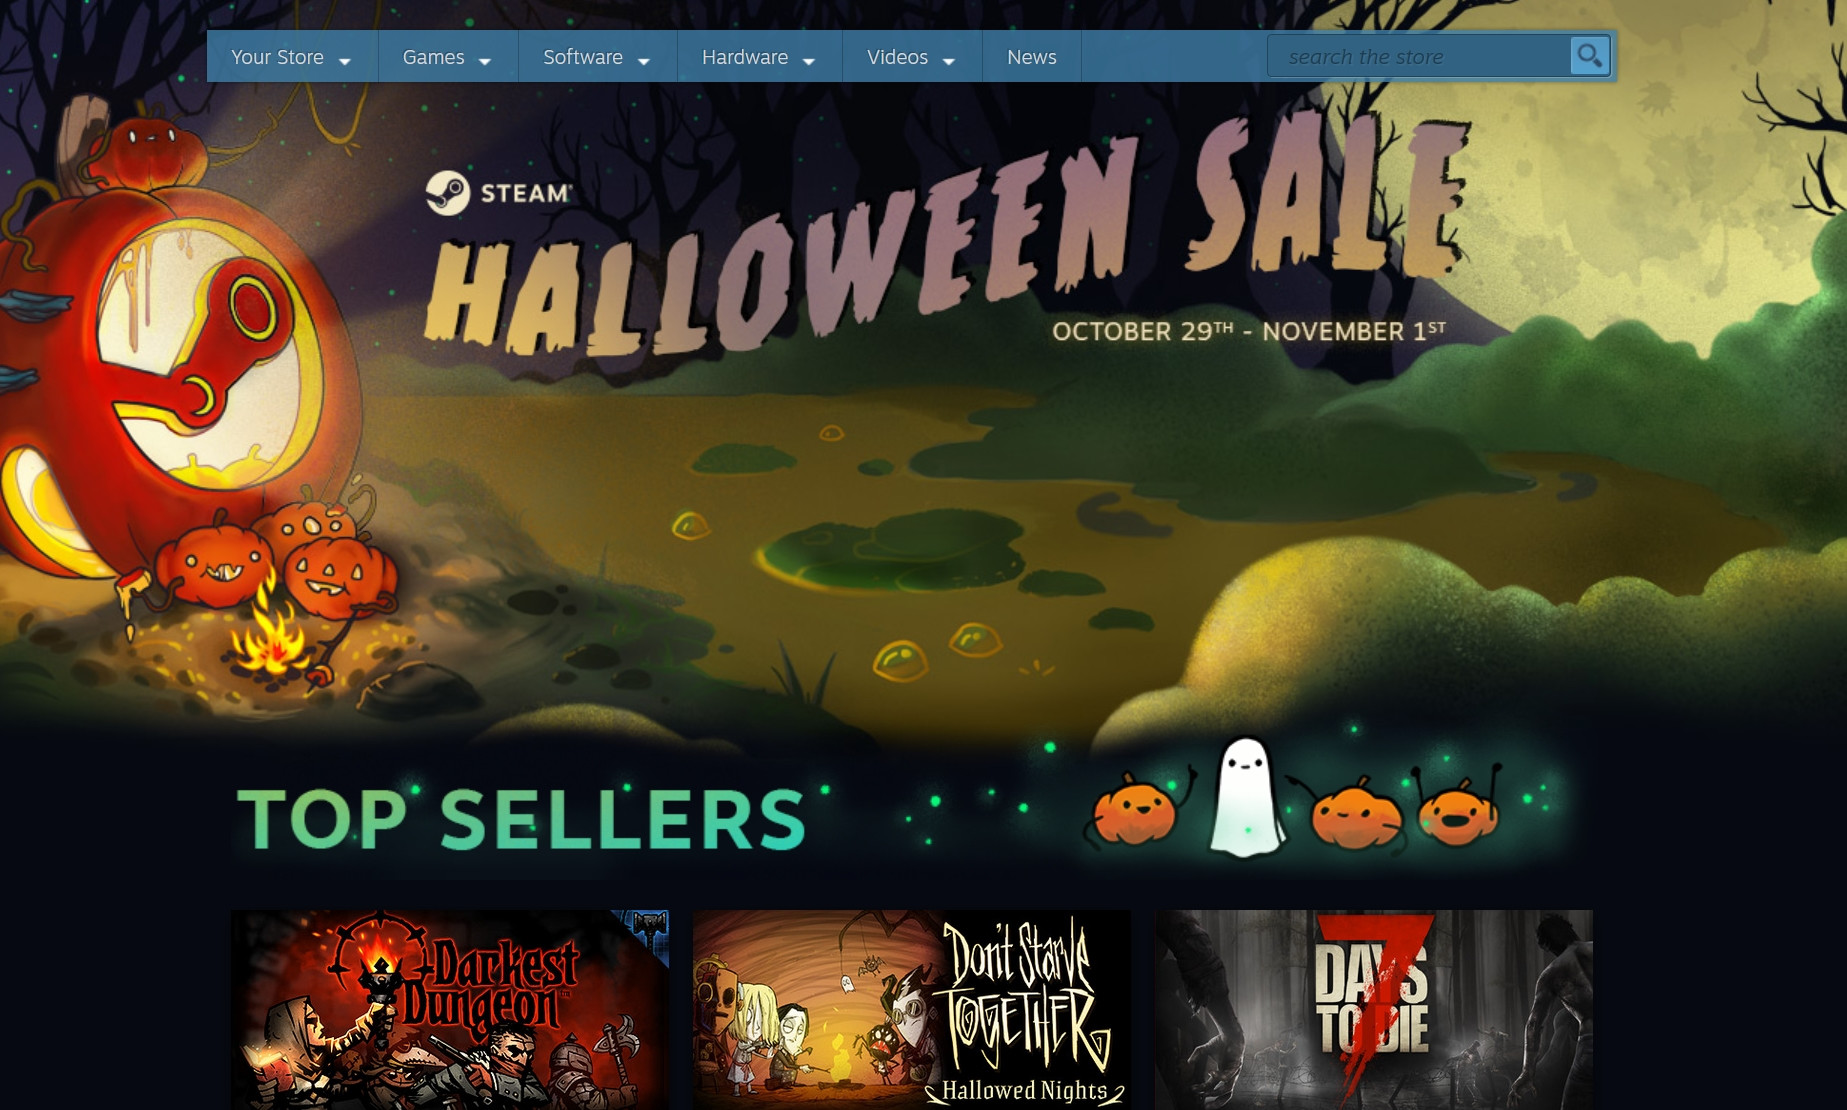 Halloween Games 2018.The Strategy Gamer S Guide To The Steam Halloween Sale 2018